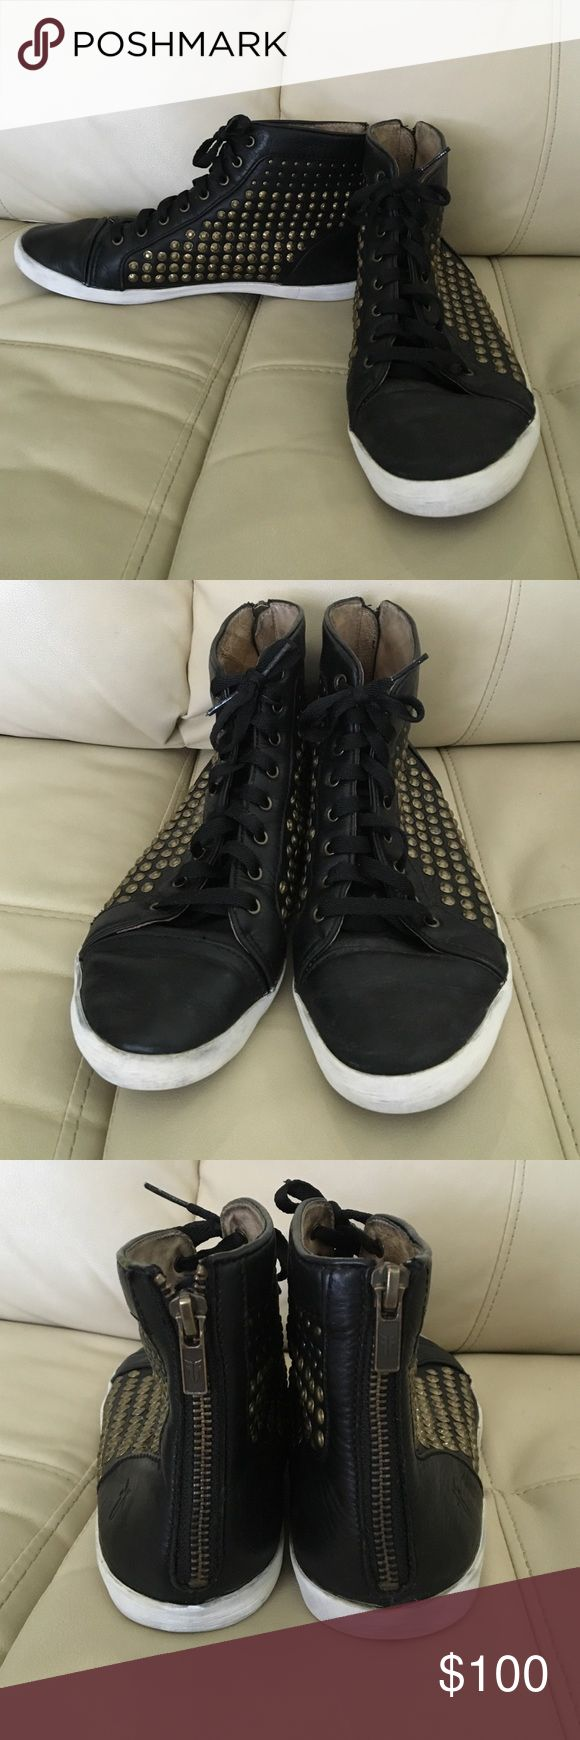 Frye Kira studded sneakers Frye Kira studded sneakers worn but lots of life left. Size 8 fit true to size. Frye Shoes Sneakers